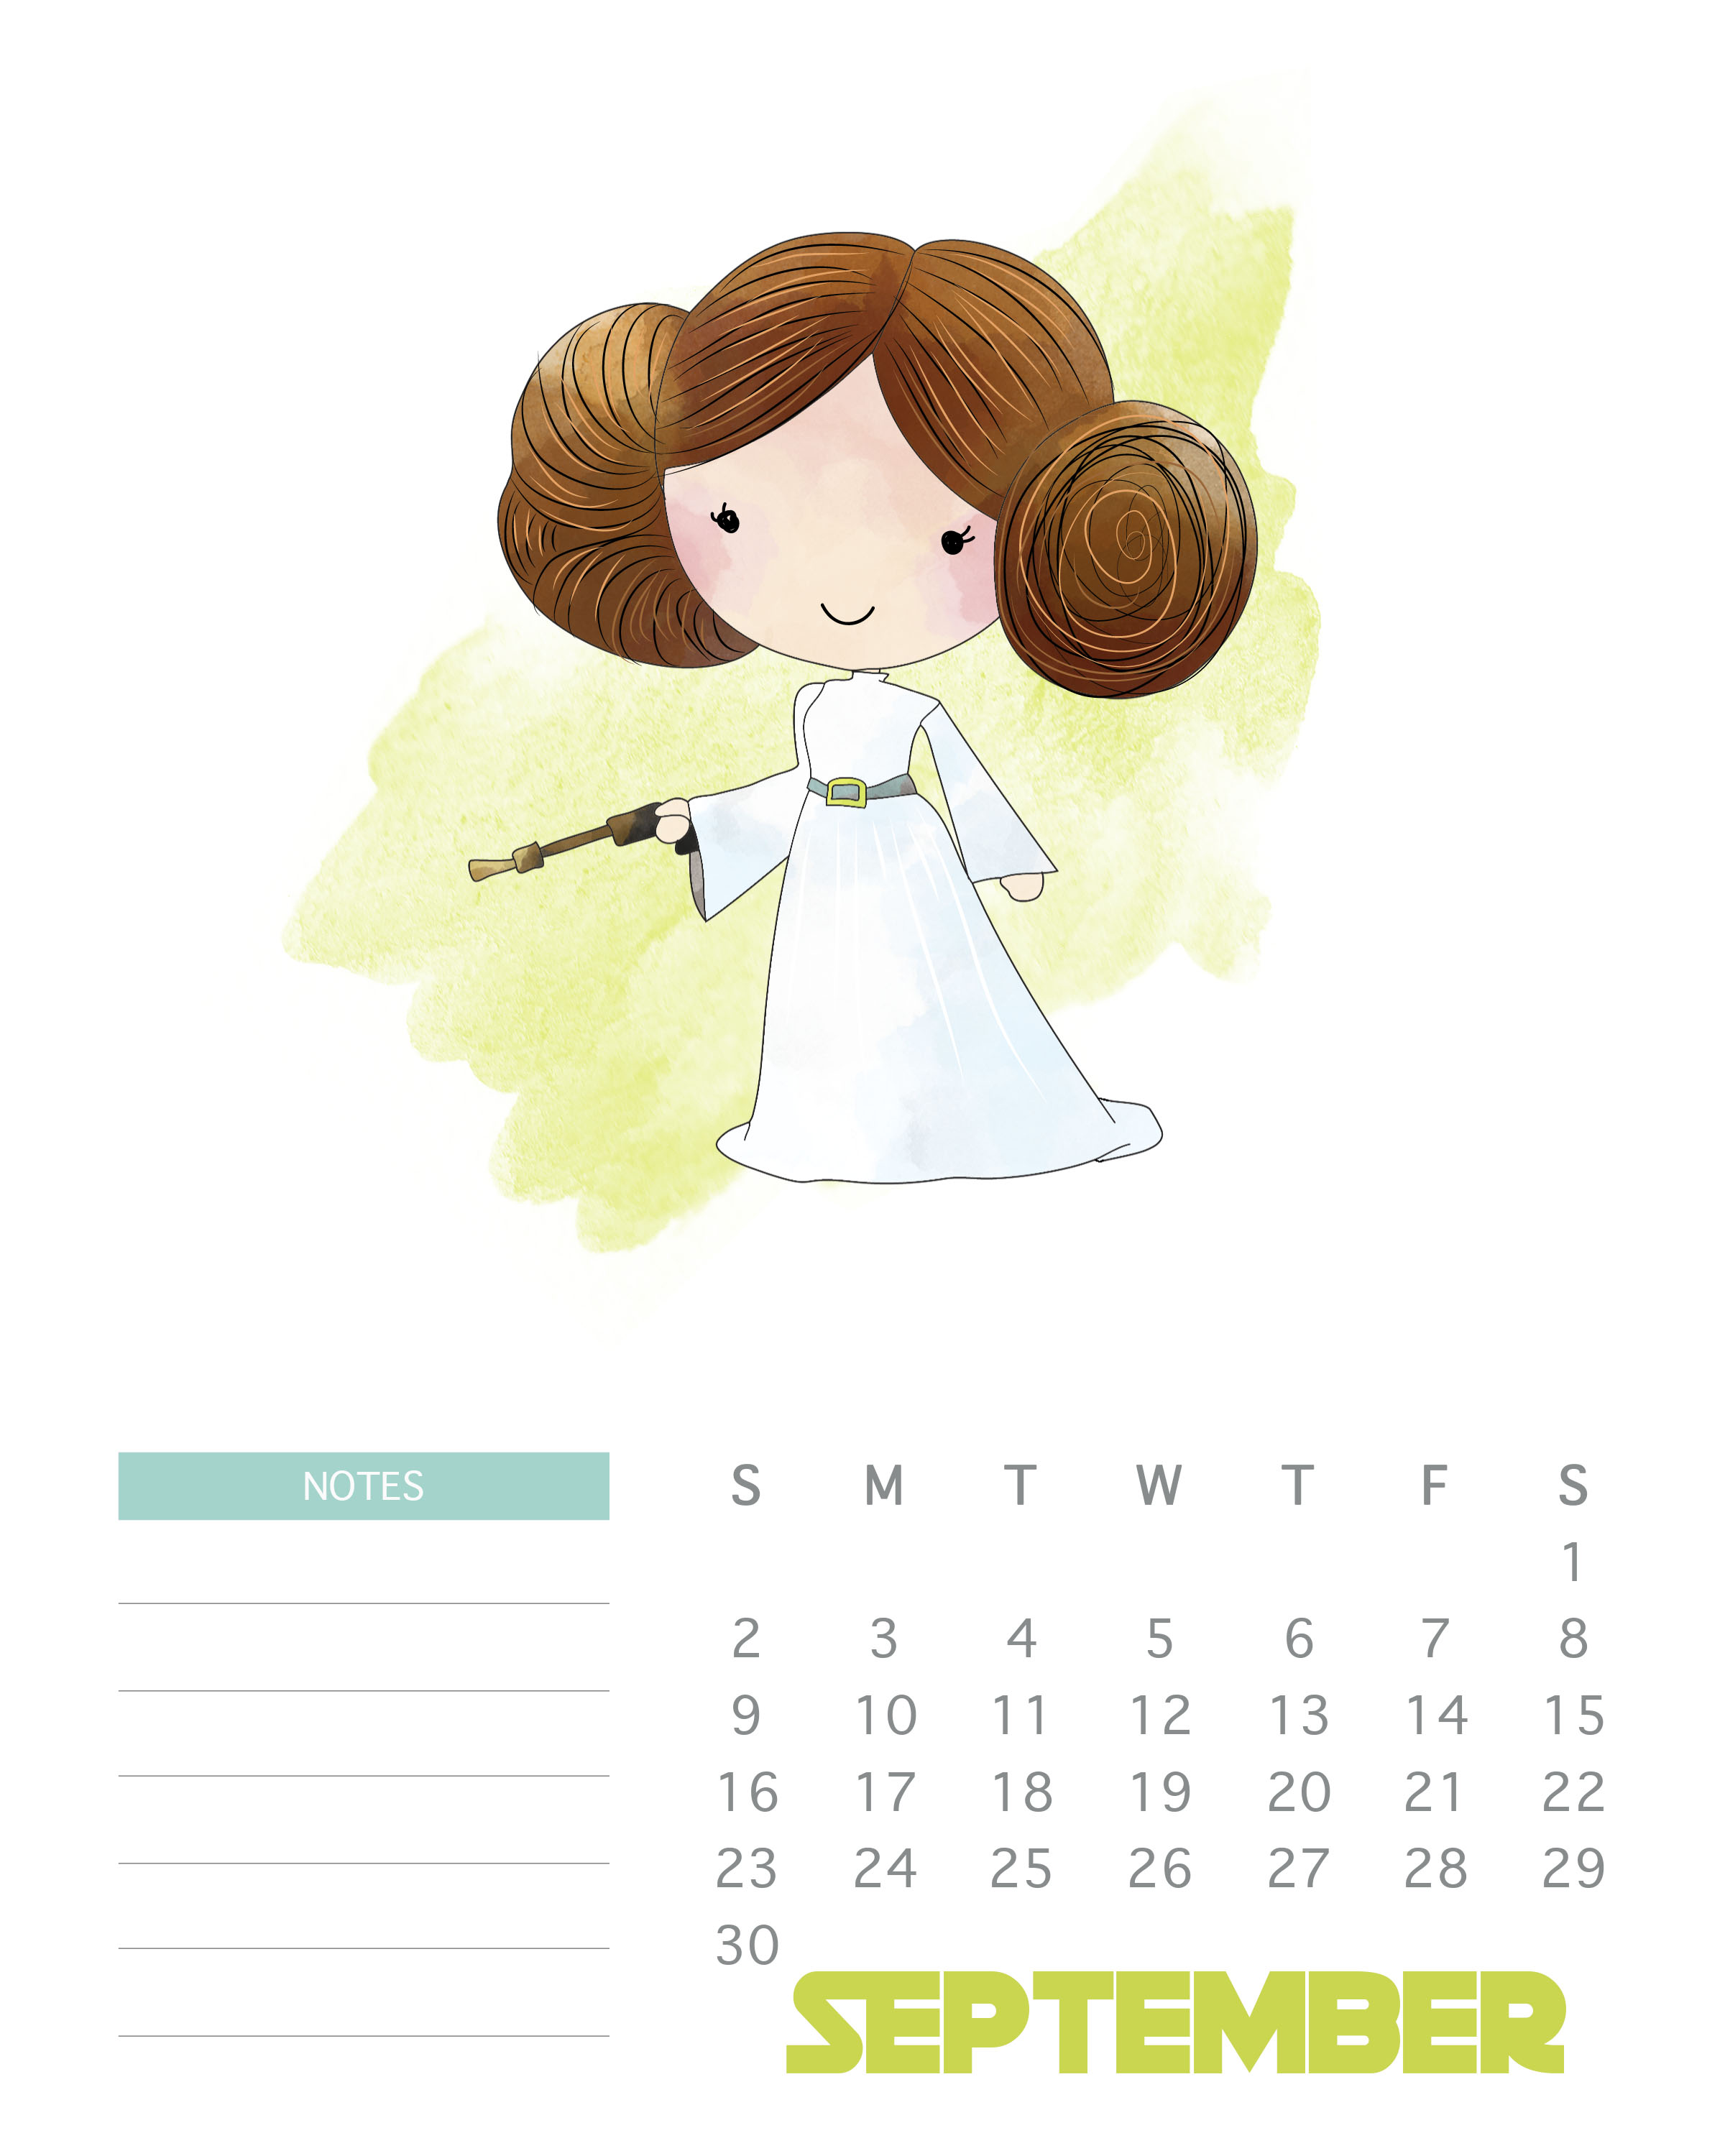 September 2018 Star Wars Calendar, Formal Calendar September 2018